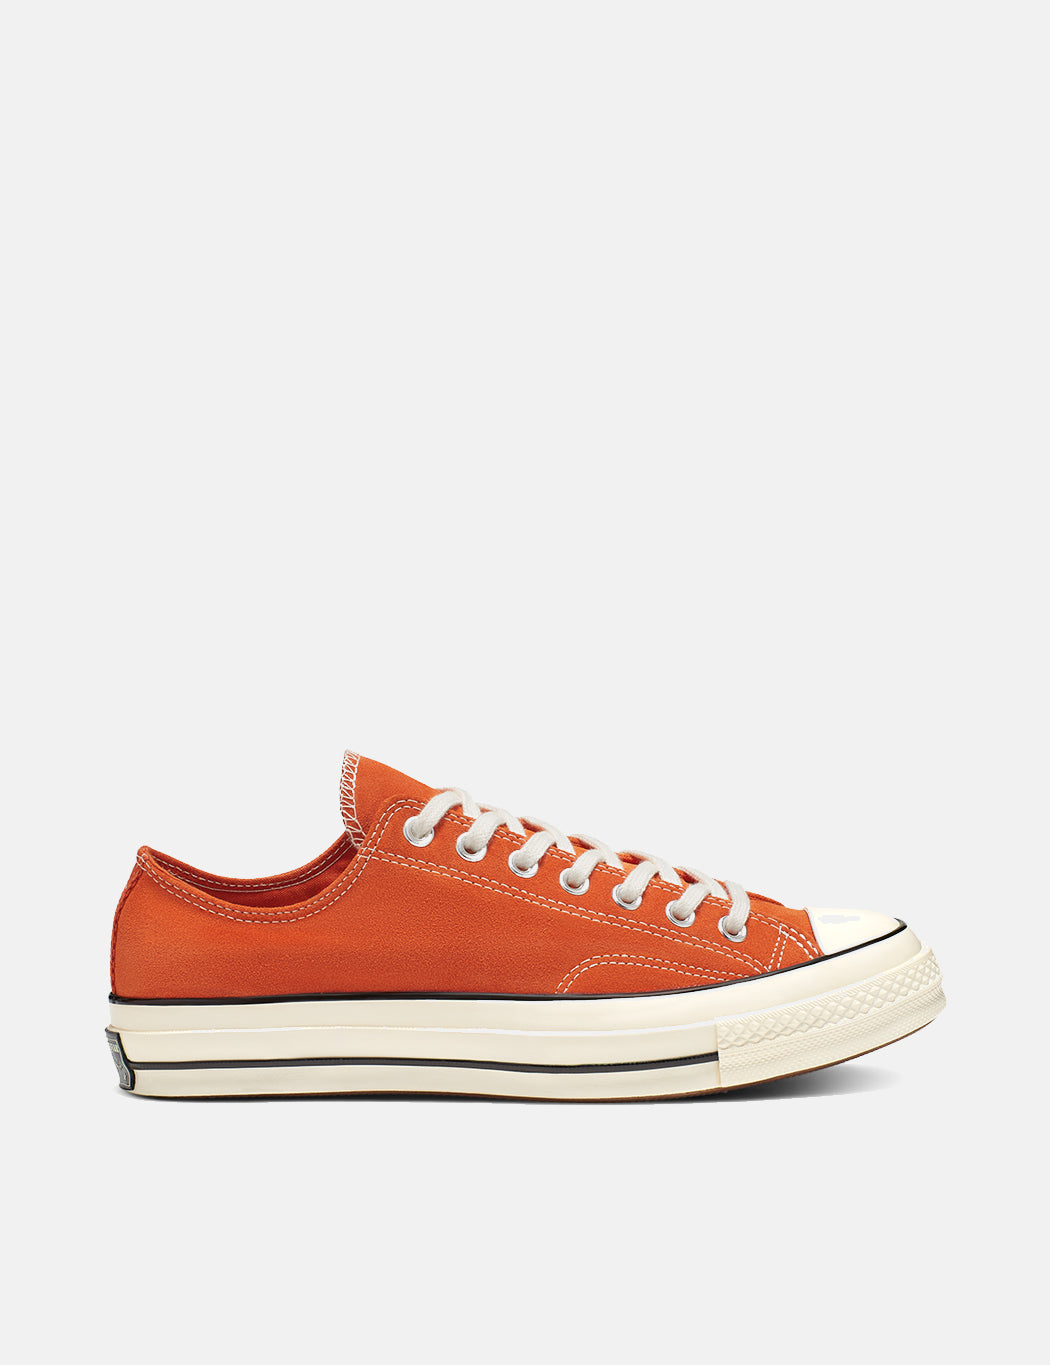 Converse 70's Chuck Taylor Low 166217C (Suede) - Campfire Orange/Black/Egret